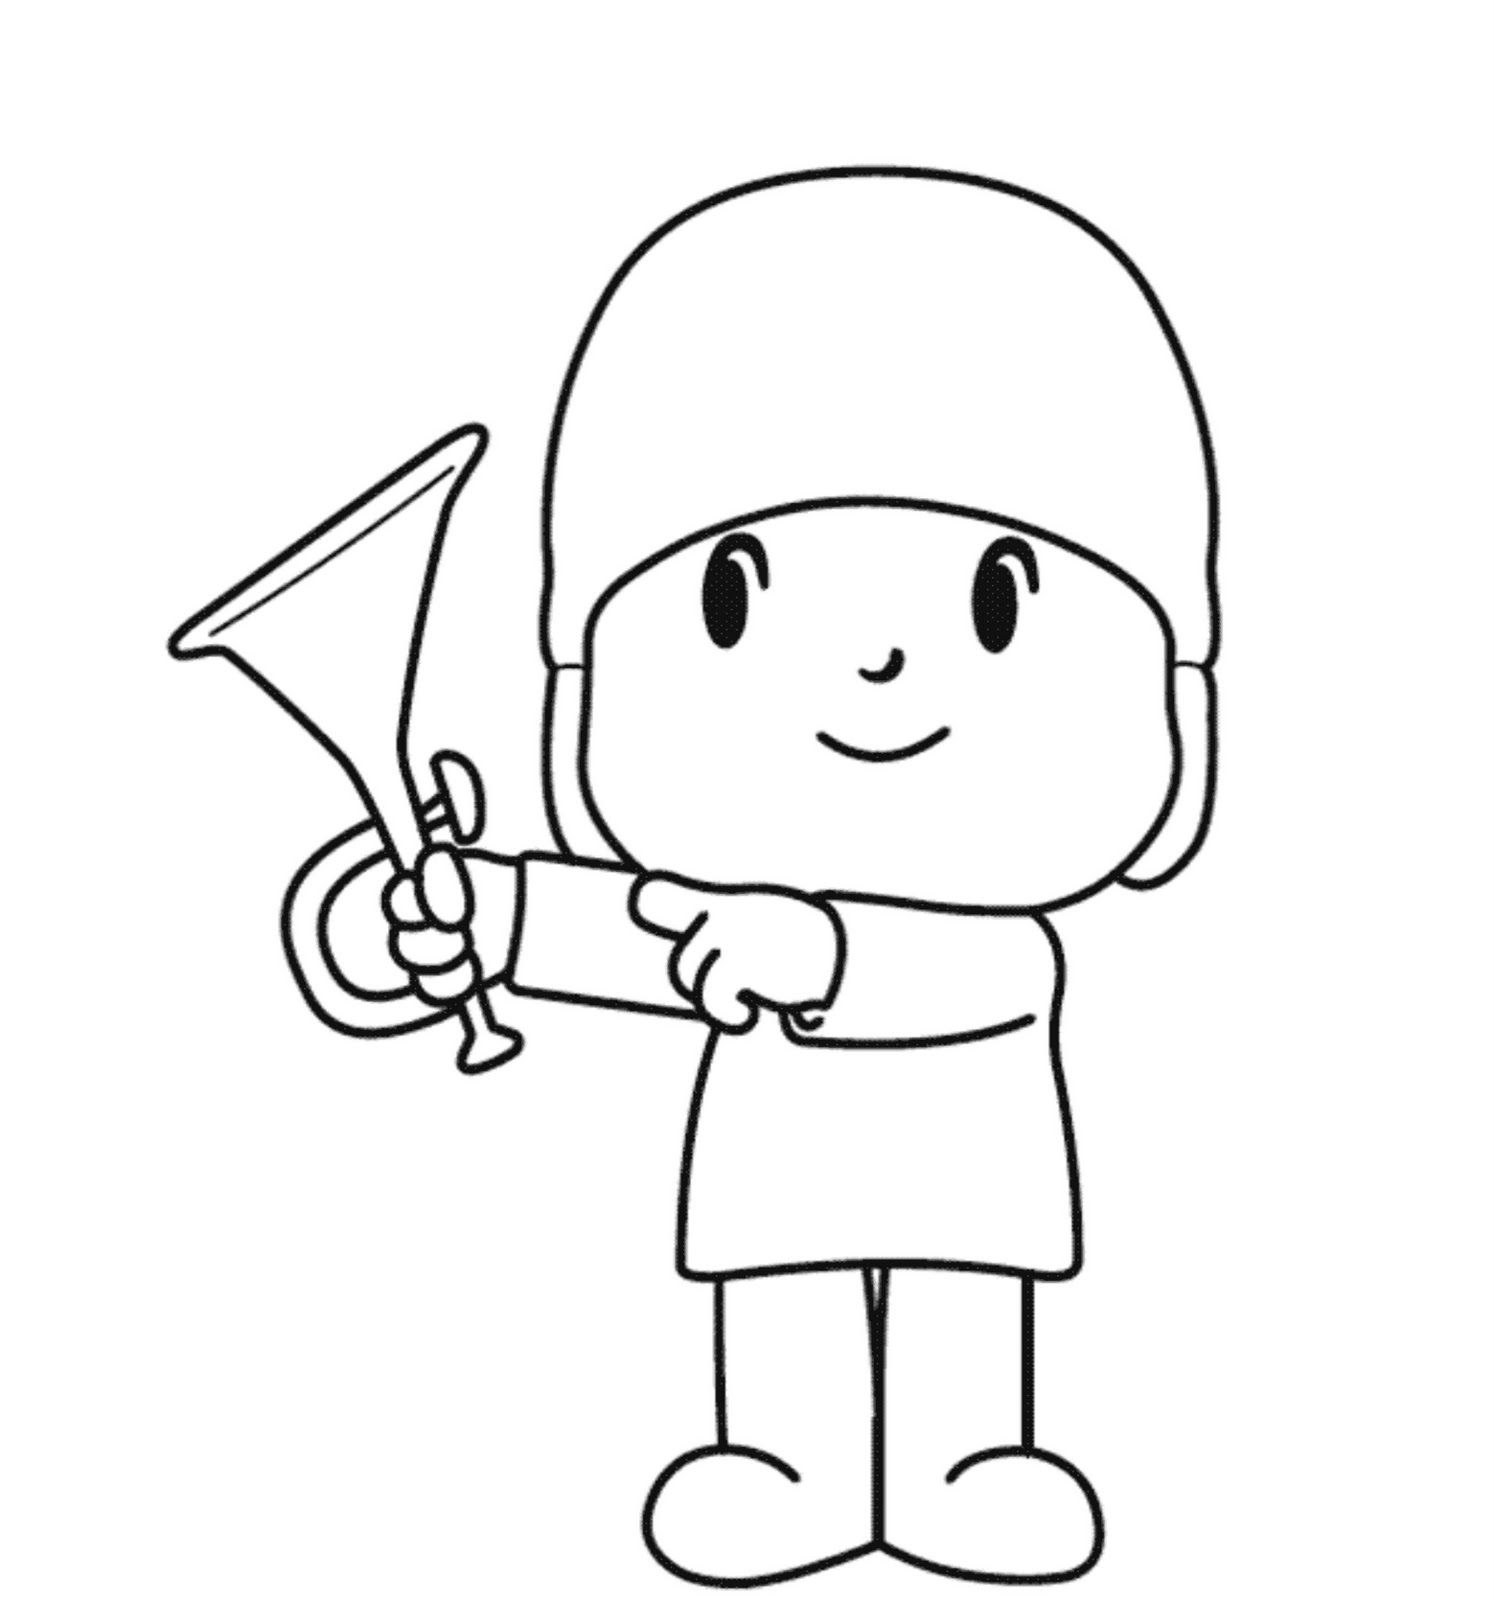 poko coloring pages - photo#7